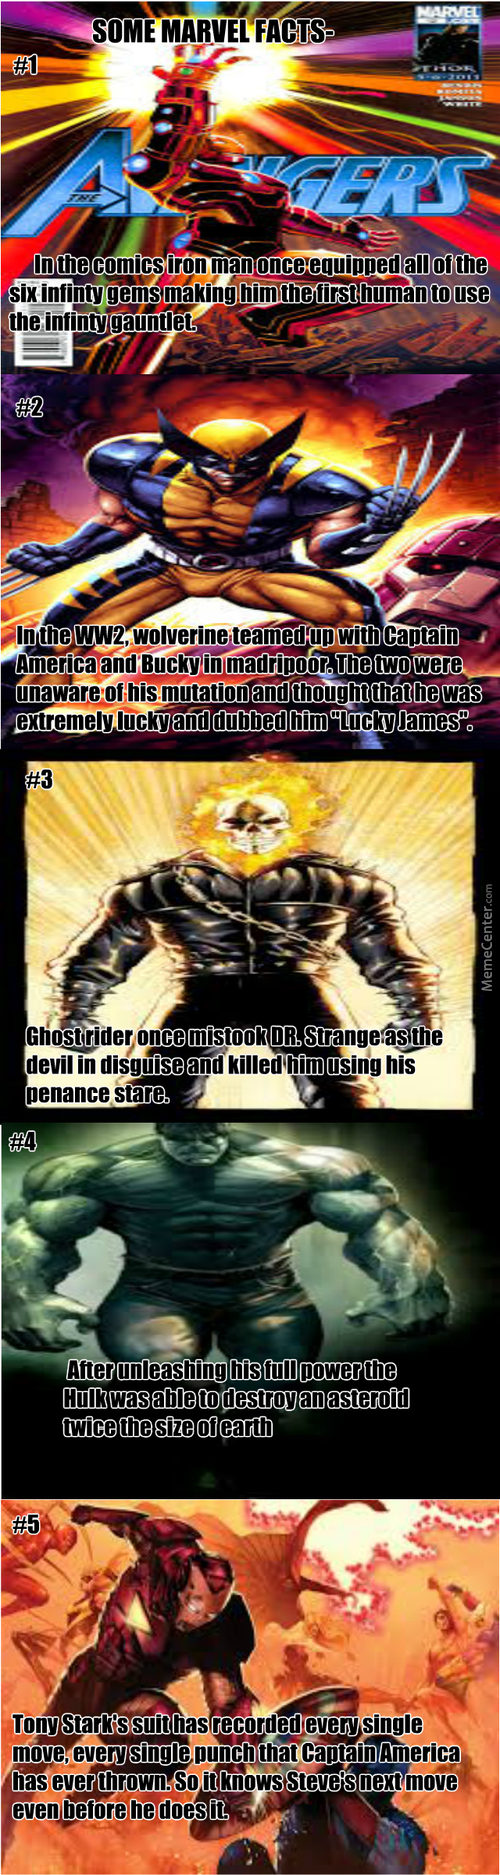 Some Marvel Facts (I Got These From Wanaang.net)